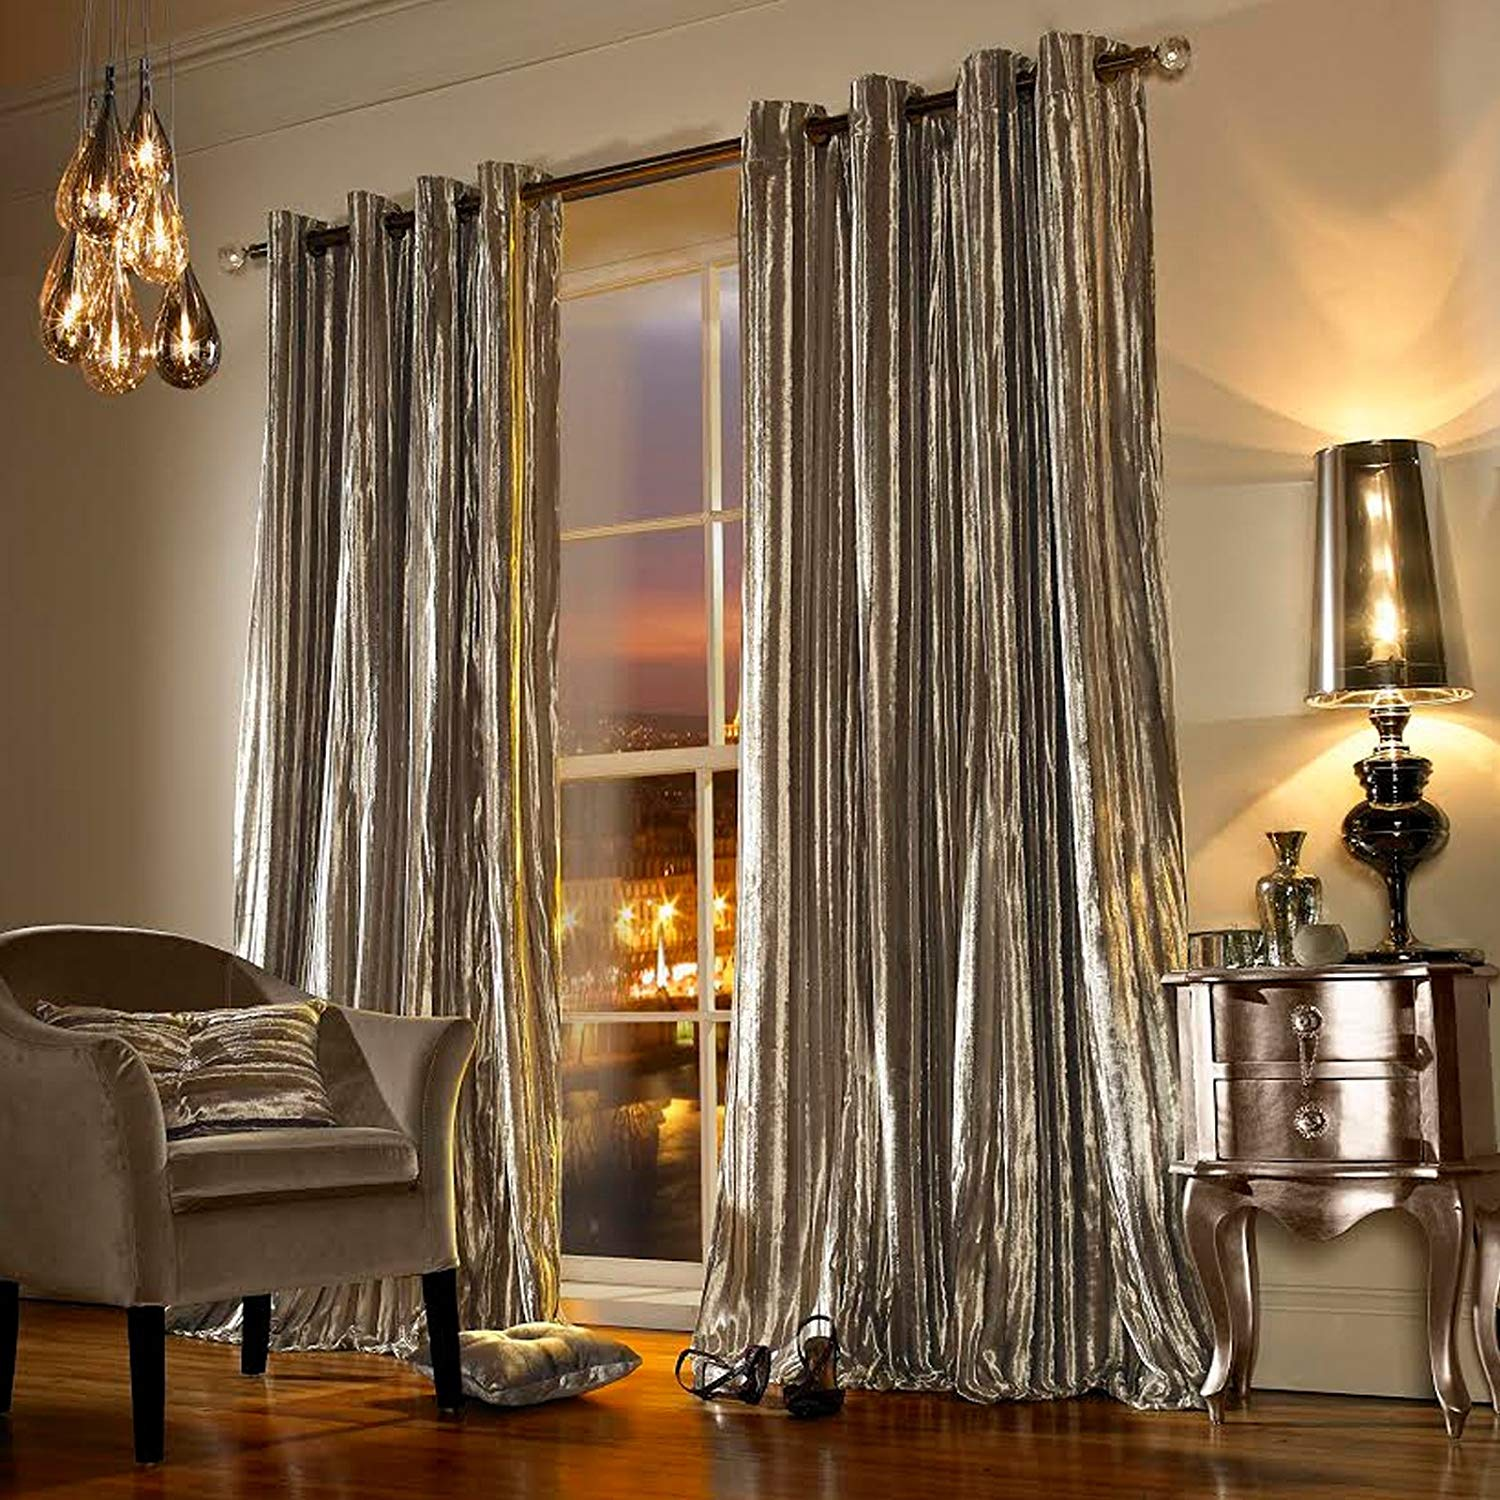 1. Iliana Curtain Panel Pair Kylie Minogue